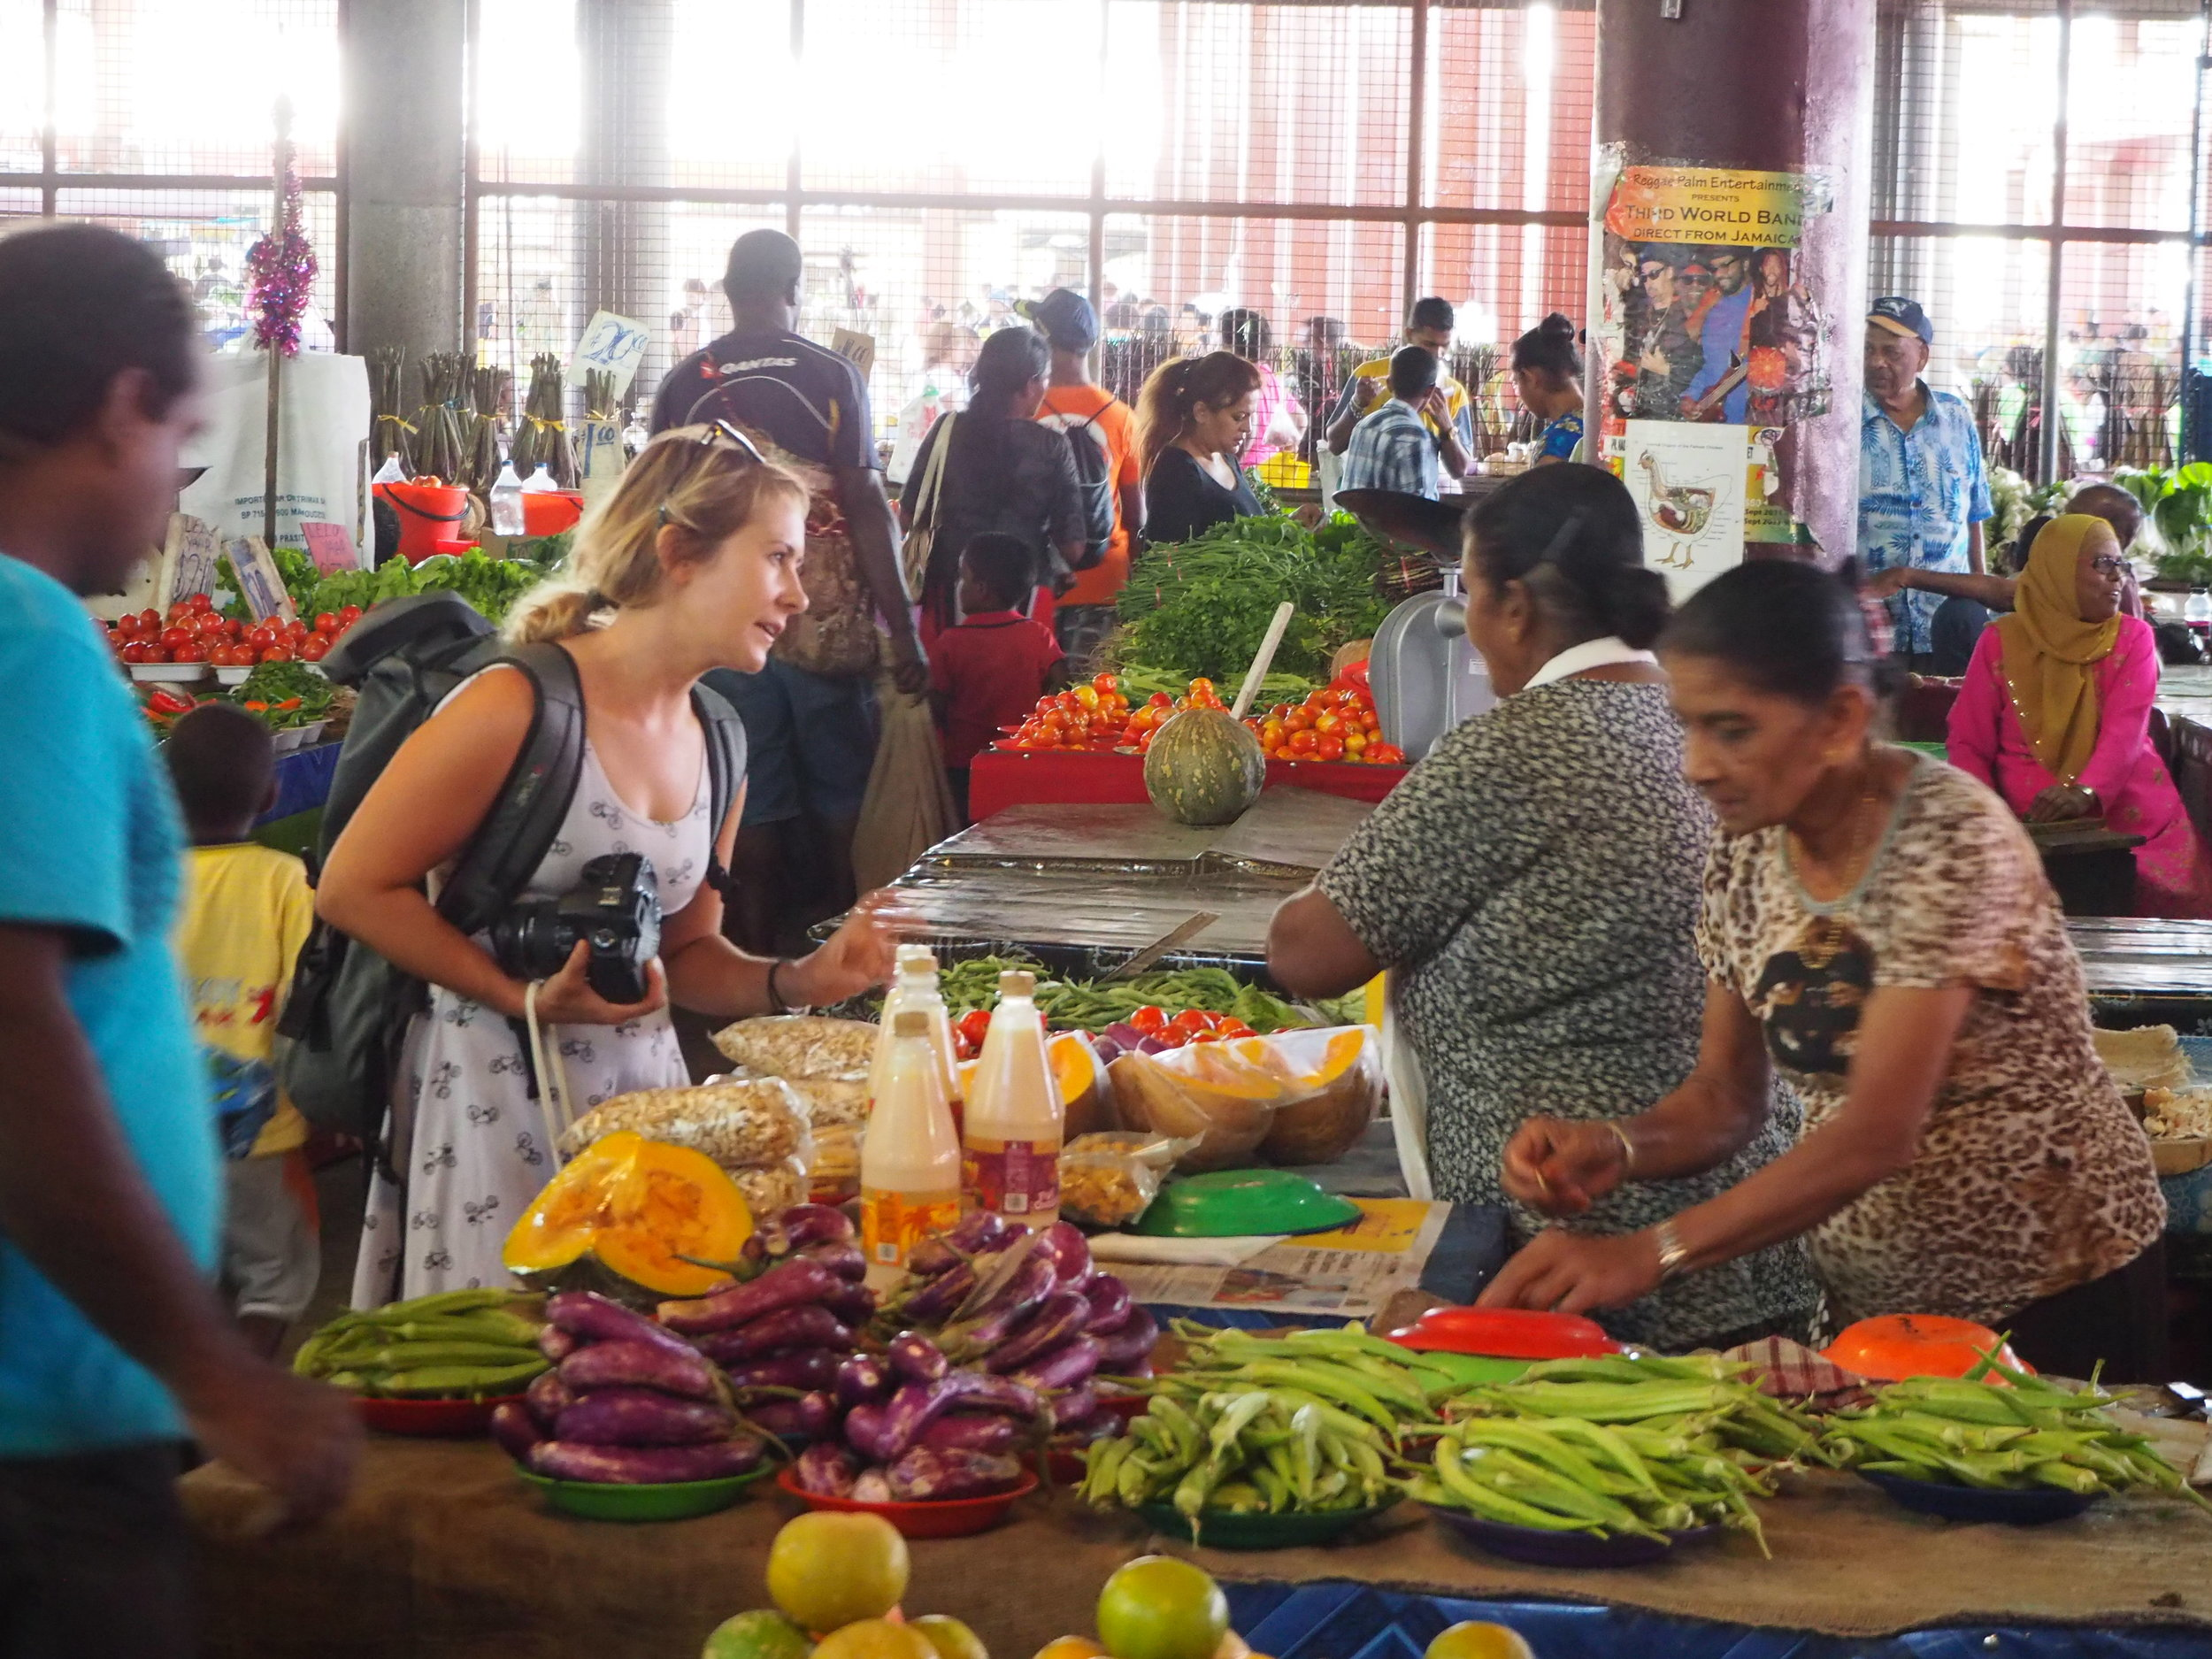 Still my favourite markets I have come across yes, the fresh produce markets in Fiji were amazing full of colourful vegetables and fruits grown and picked by the locals.